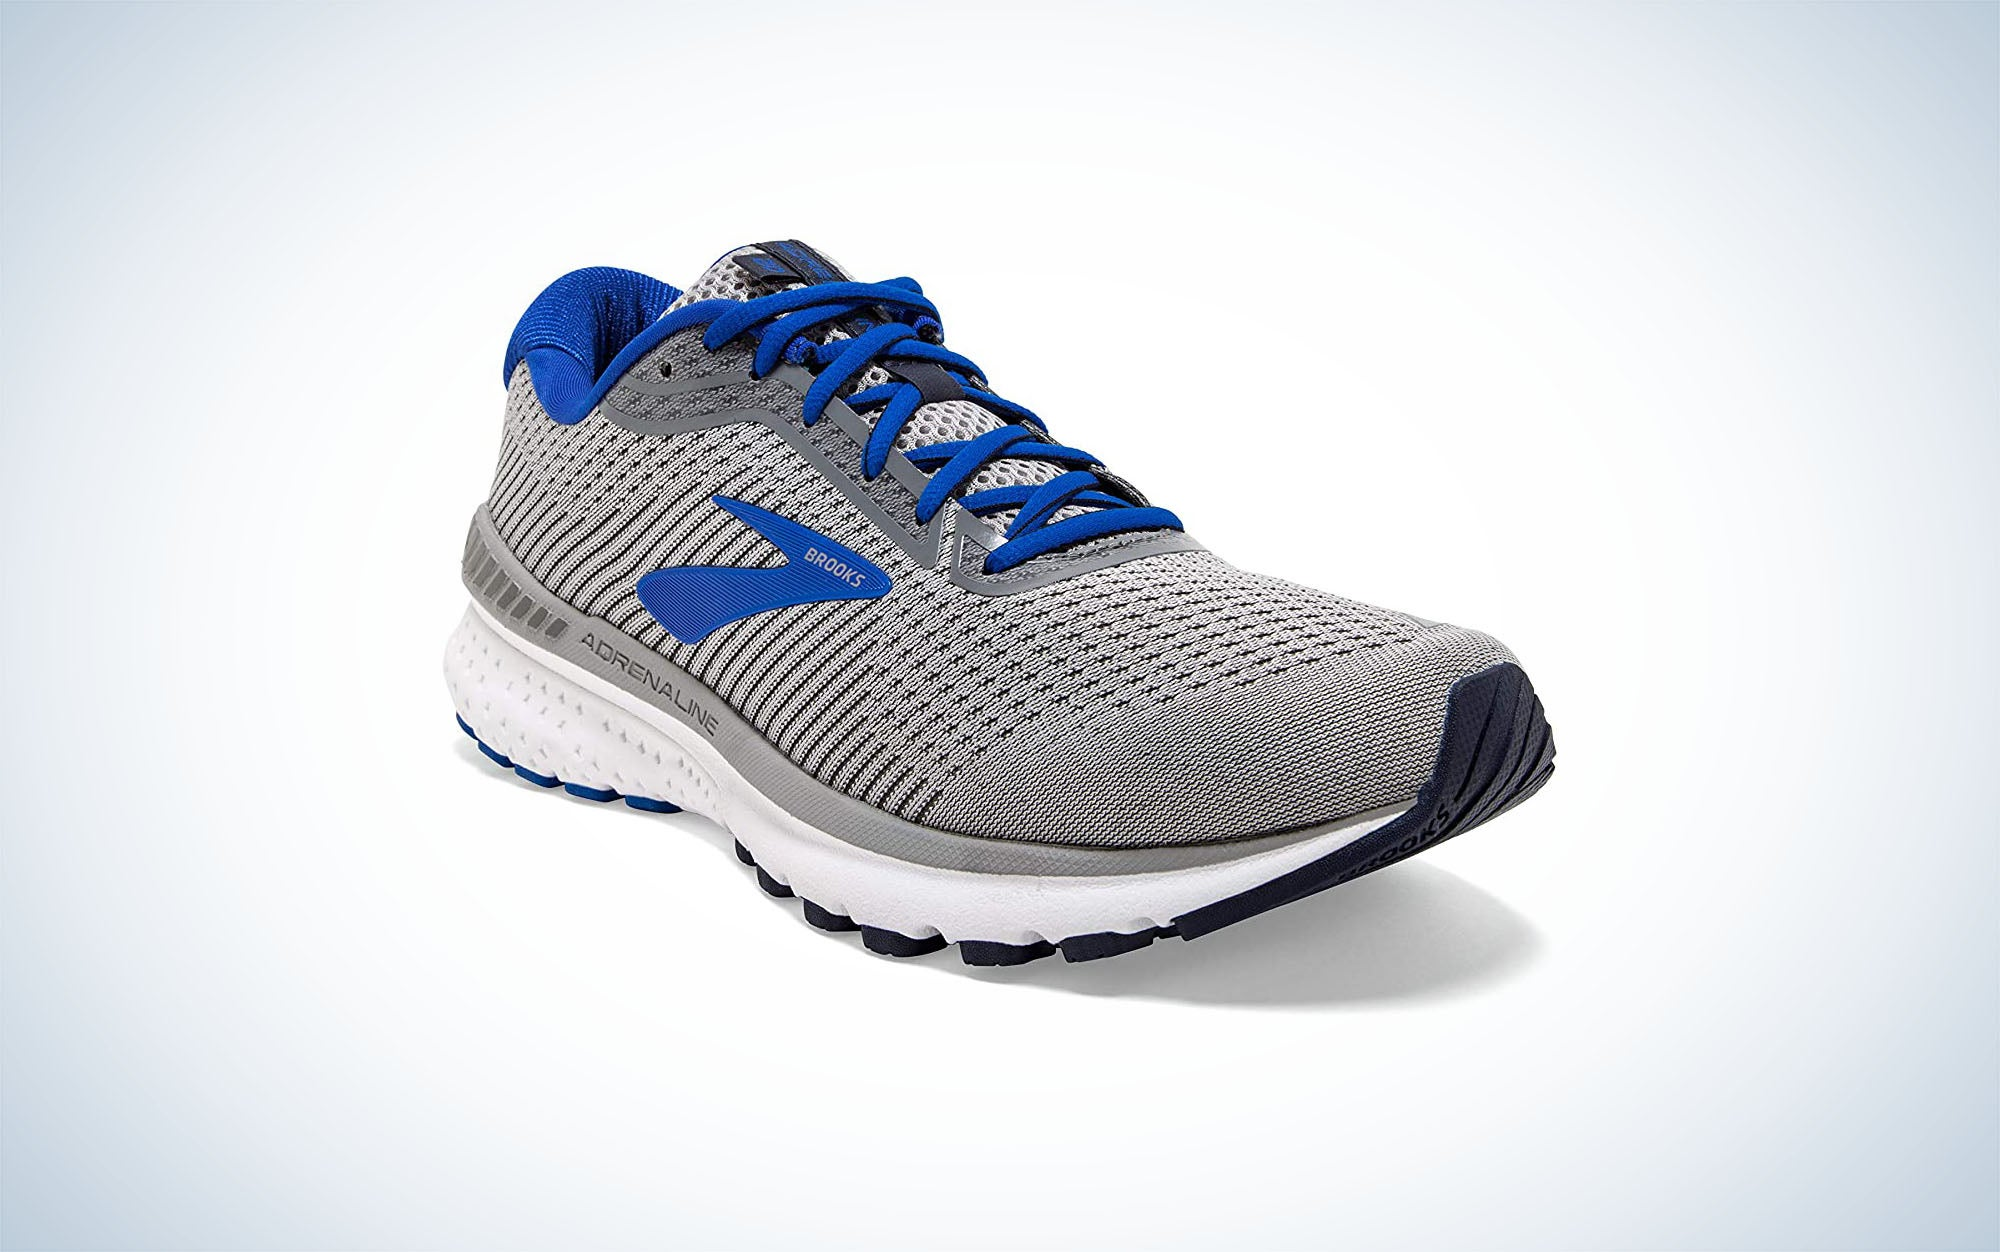 Brooks Men's Adrenaline GTS 20 are some of the best men's running shoes.